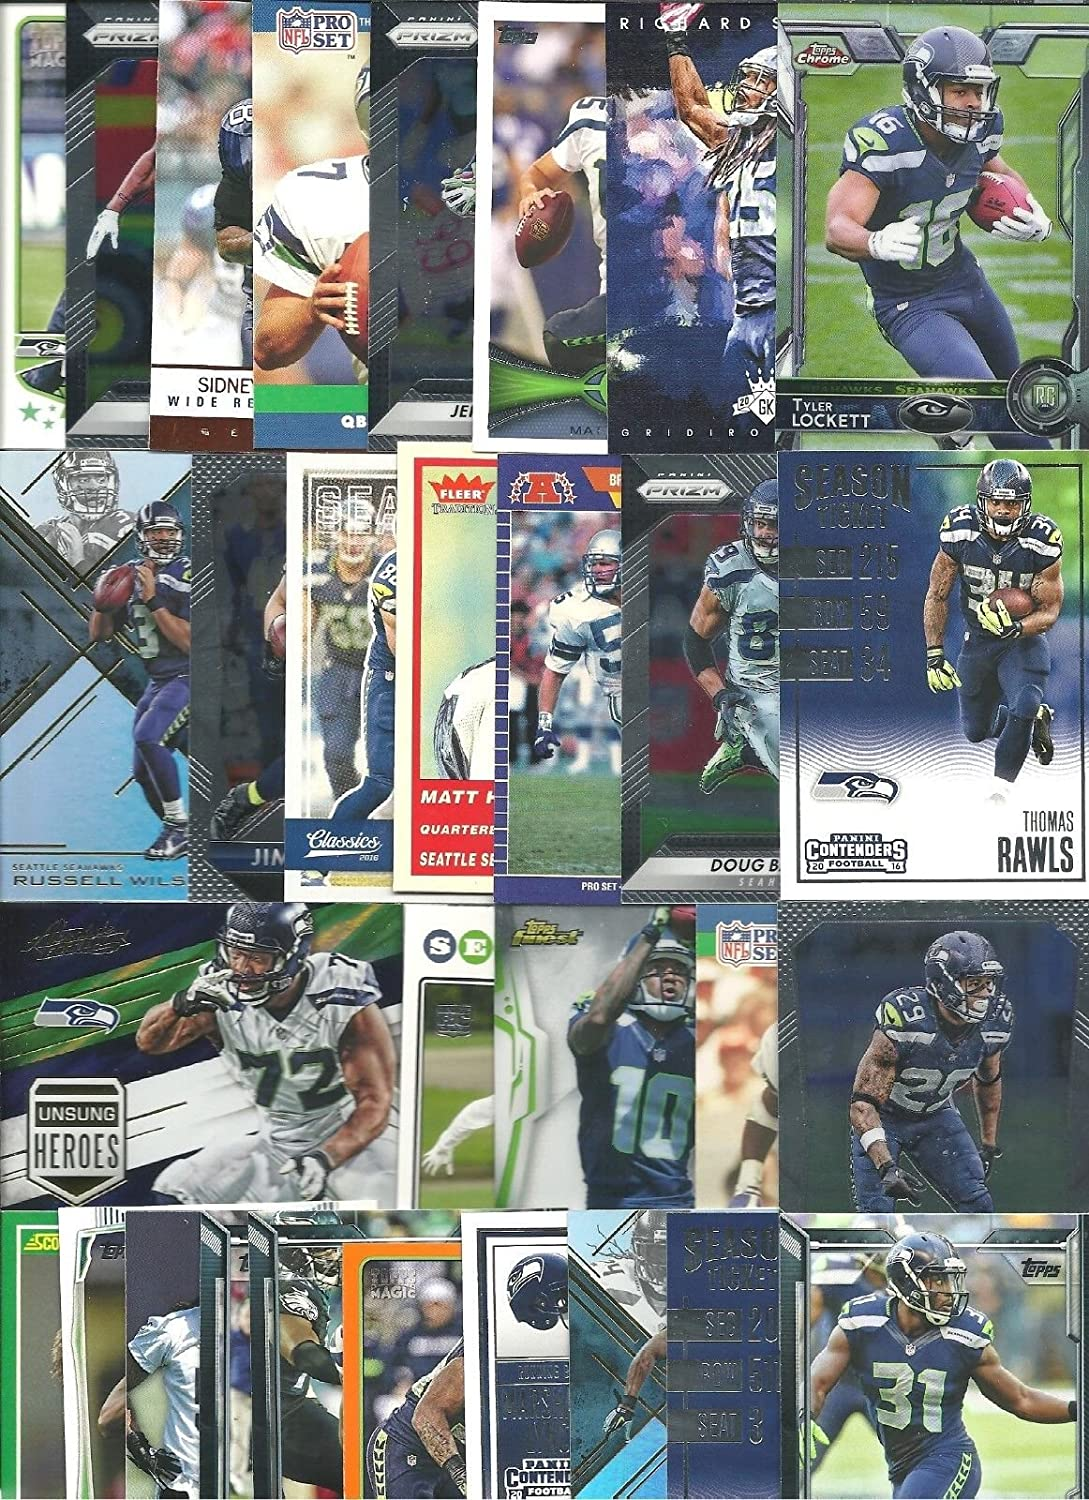 Amazon.com: HUGE 72 Piece Football Birthday Party SEATTLE SEAHAWKS Party Favor Set of 12 Seahawks Helmet Rings and 60 SEAHAWKS Players Cards Featuring Star ...